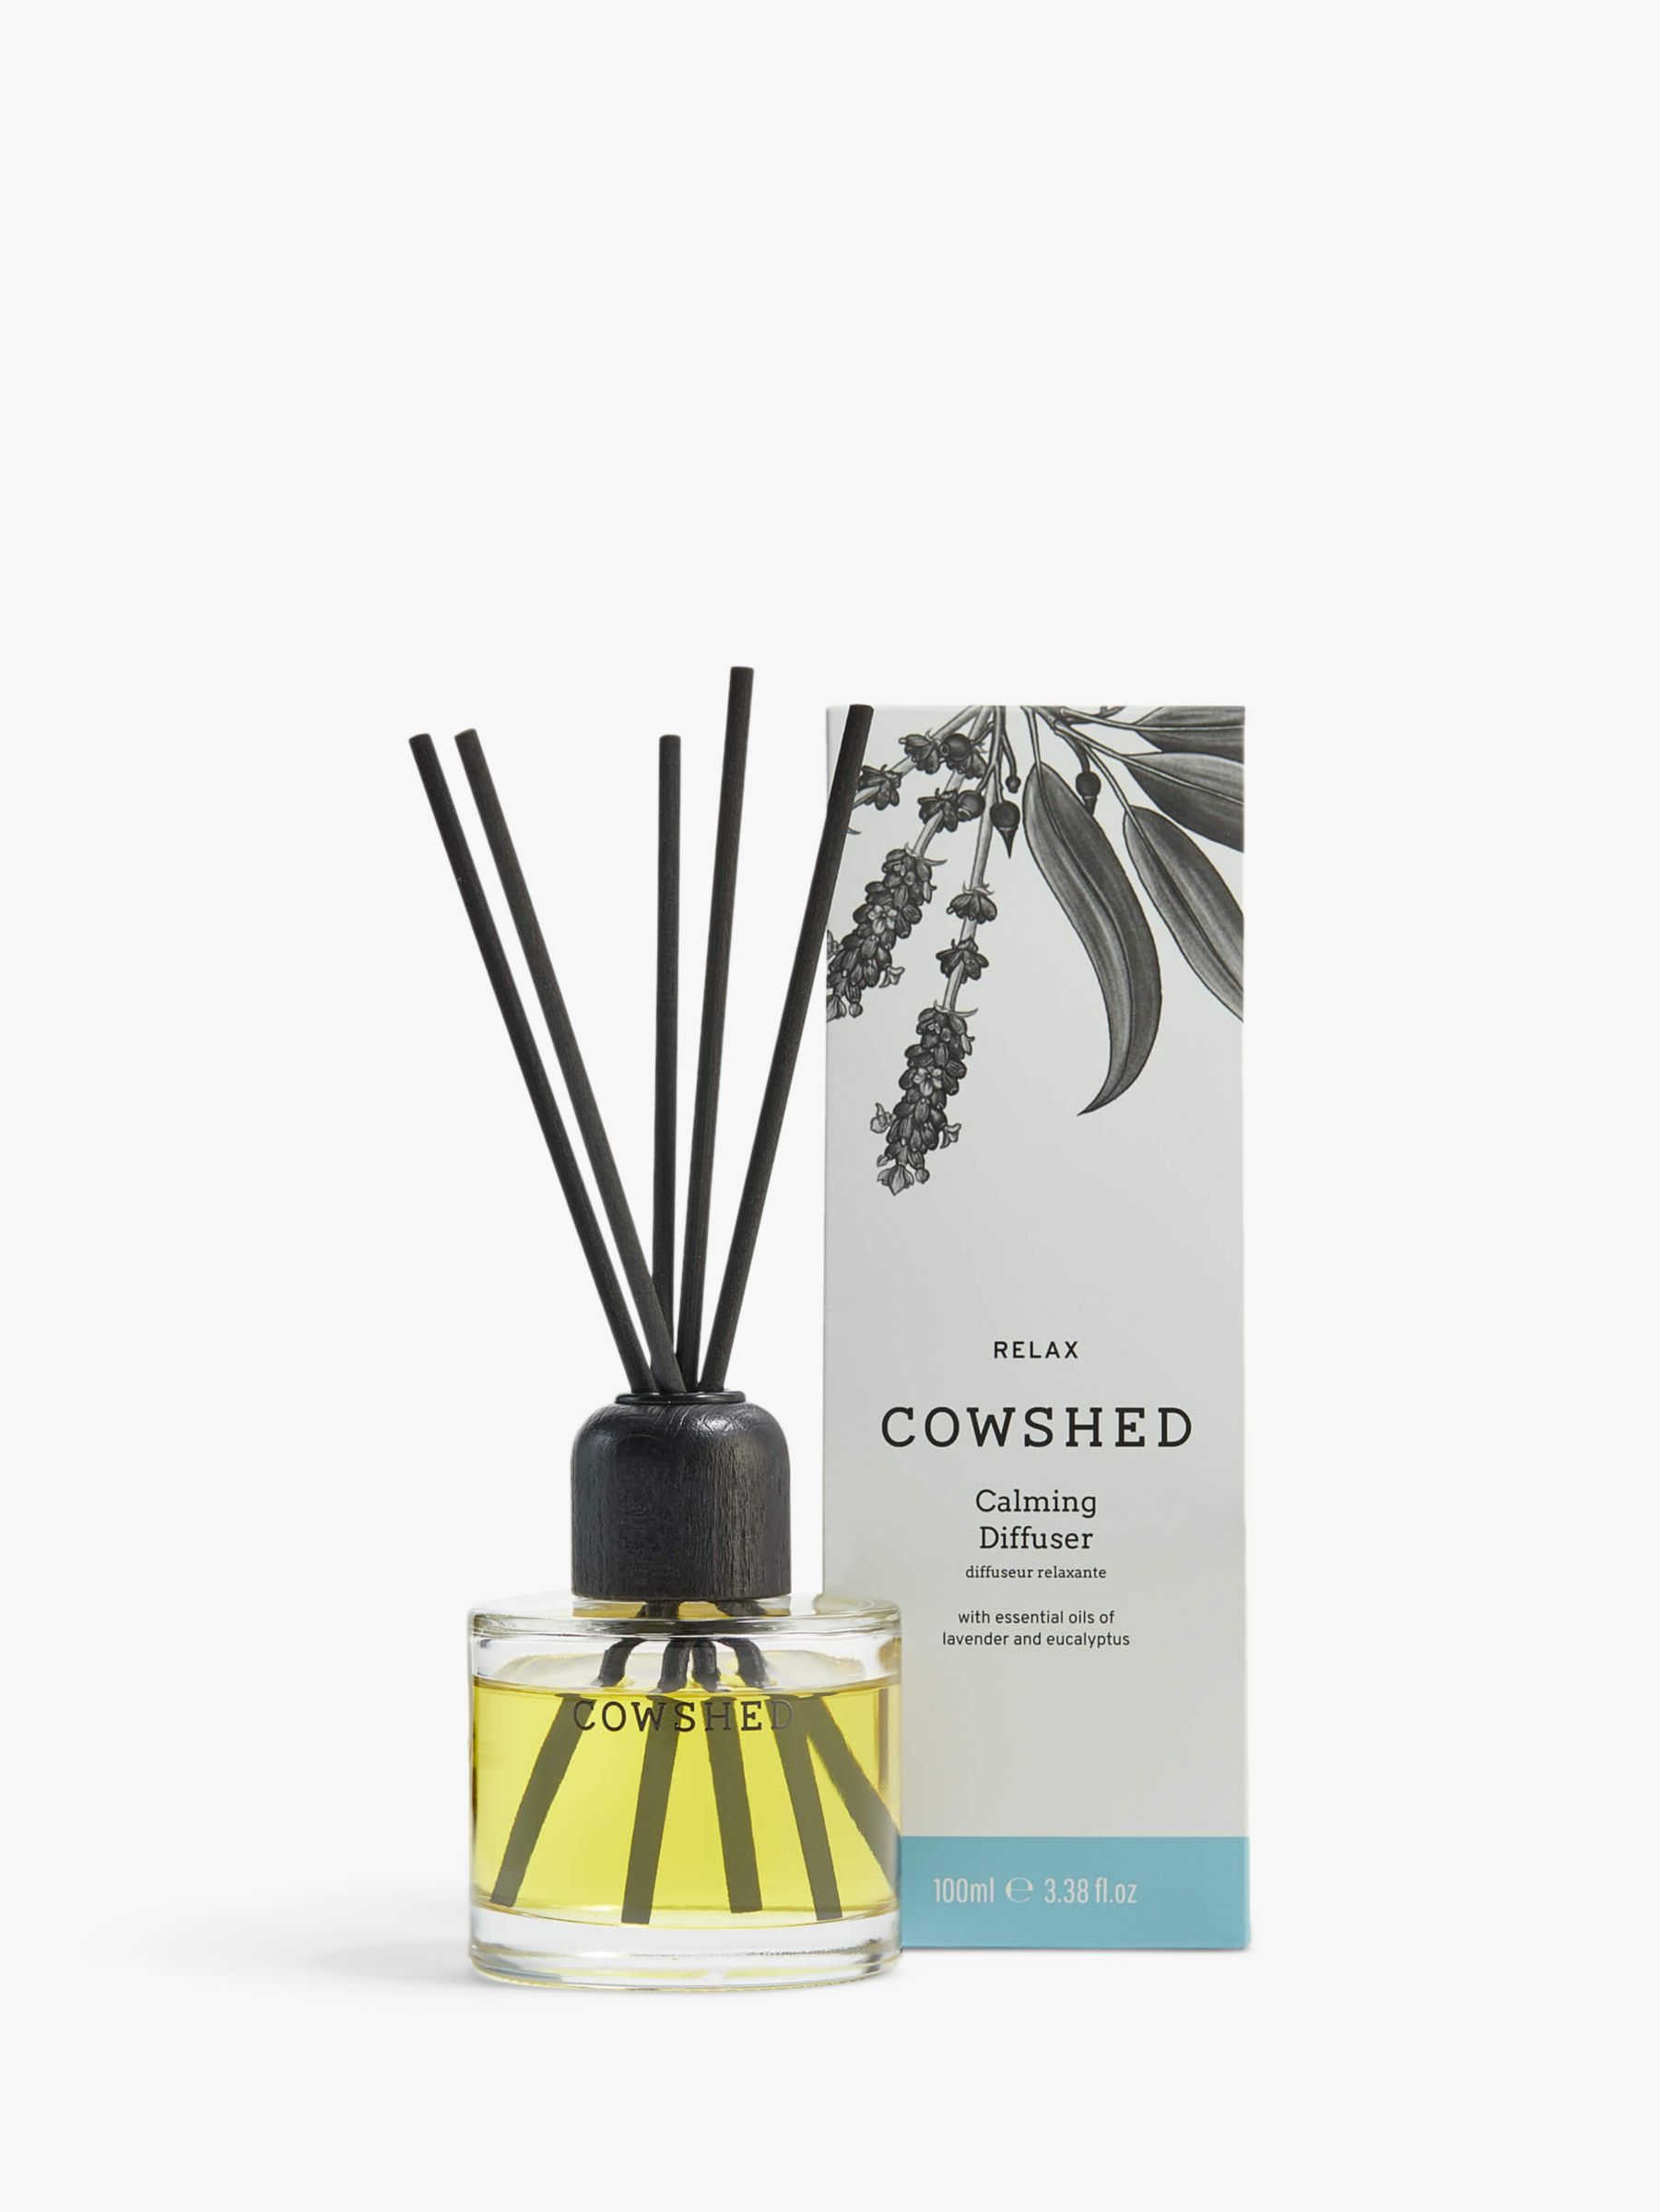 Cowshed Cowshed Relax Calming Diffuser, 100ml